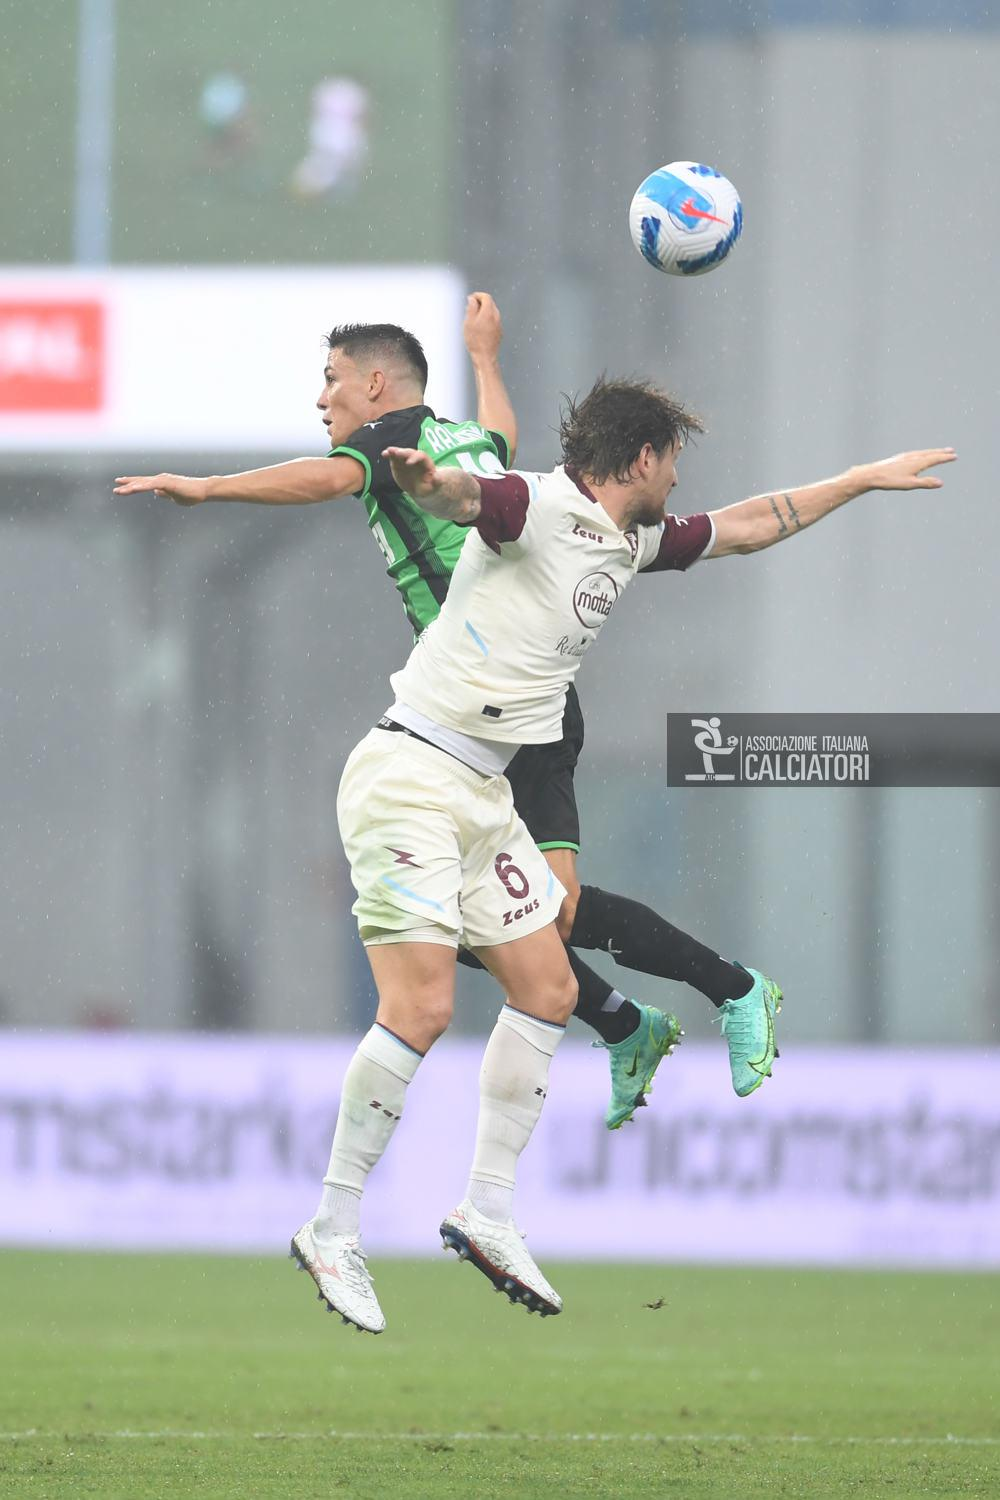 Volare oh oh